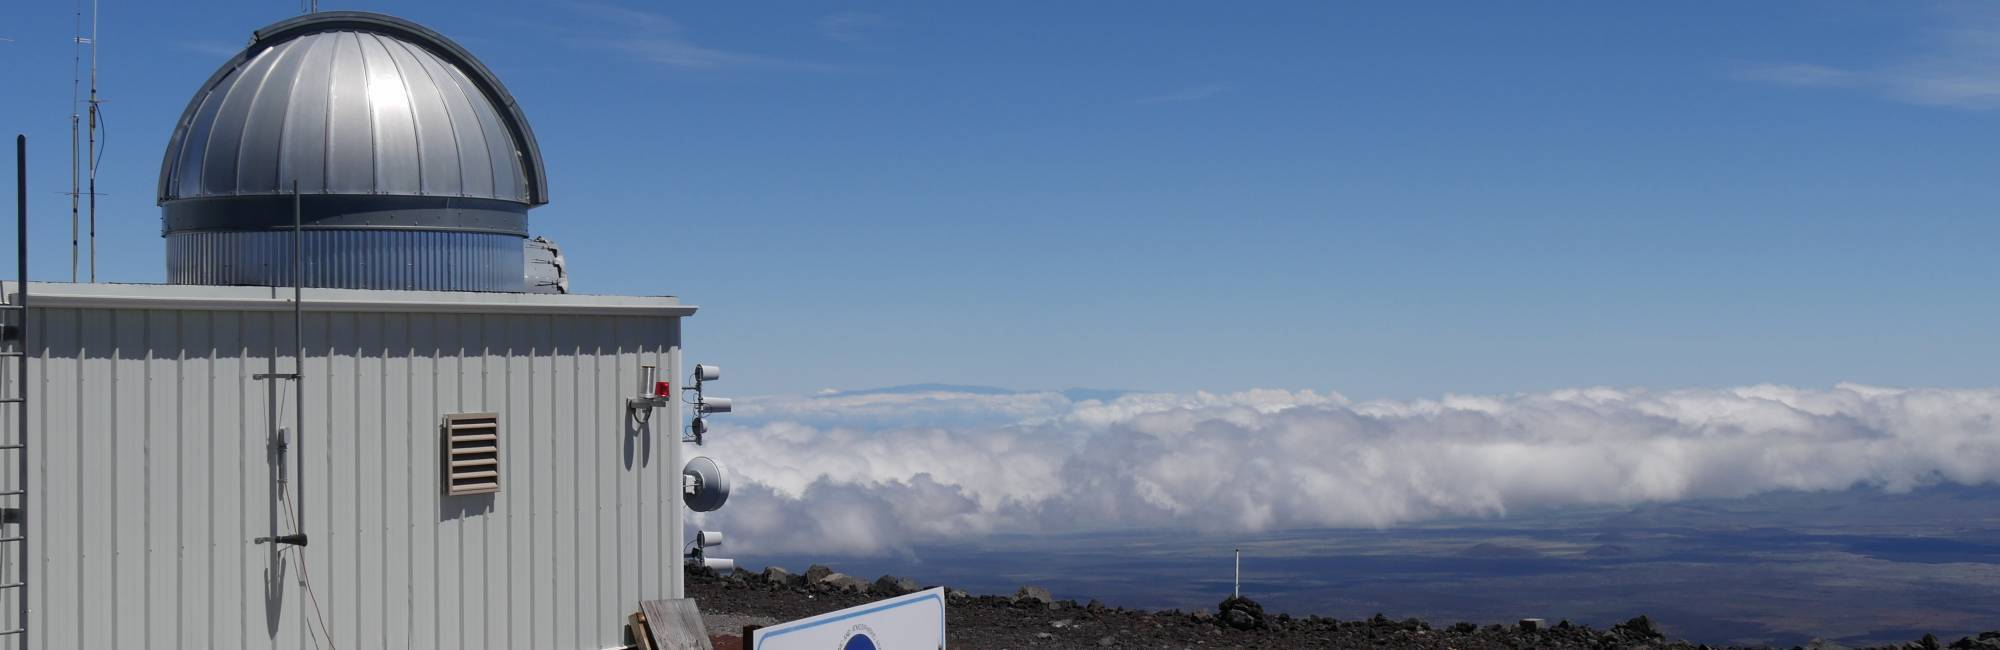 "Photo of NOAA""s Mauna Loa observatory on the barren slopes of a volcano in Hawaii."